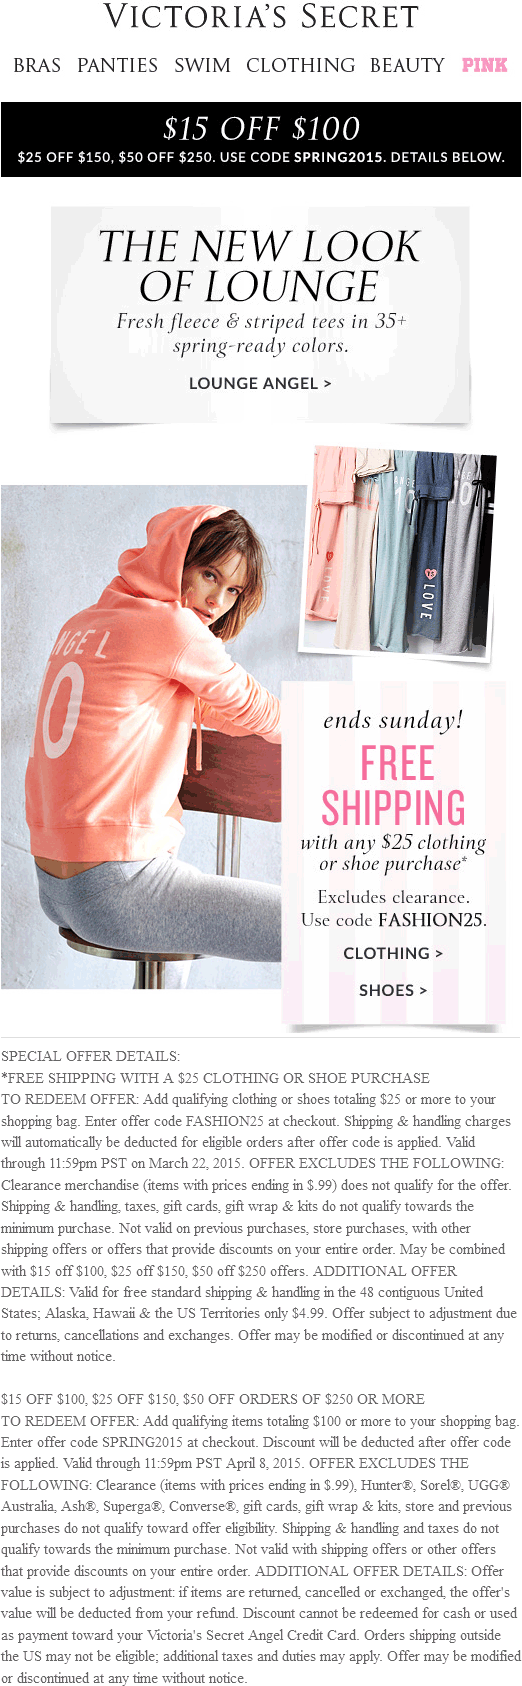 Victorias Secret Coupon August 2017 $15-$50 off $100+ at Victorias Secret, or online via promo code SPRING2015